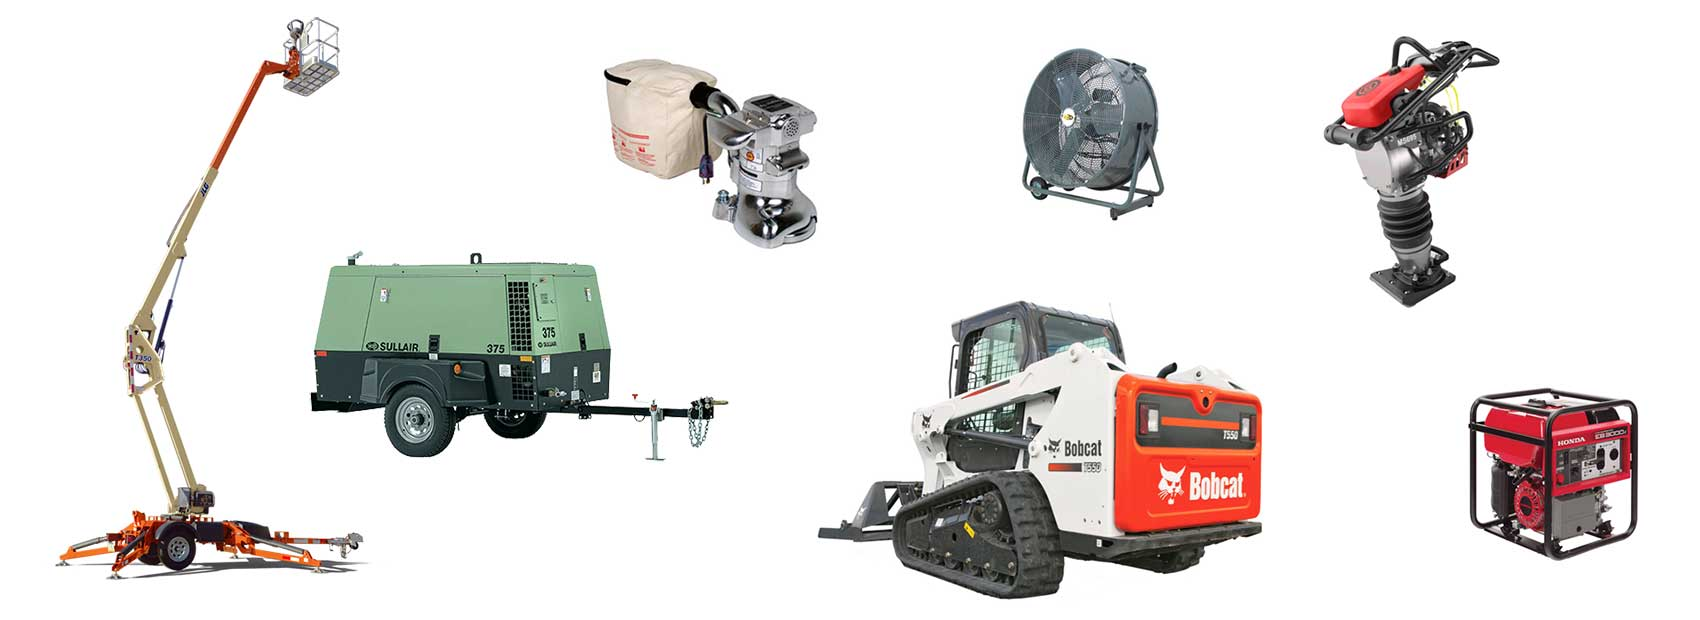 Equipment Rentals in Justin TX, Ponder, Haslet, New Fairview, Rhome, Northlake, Krum